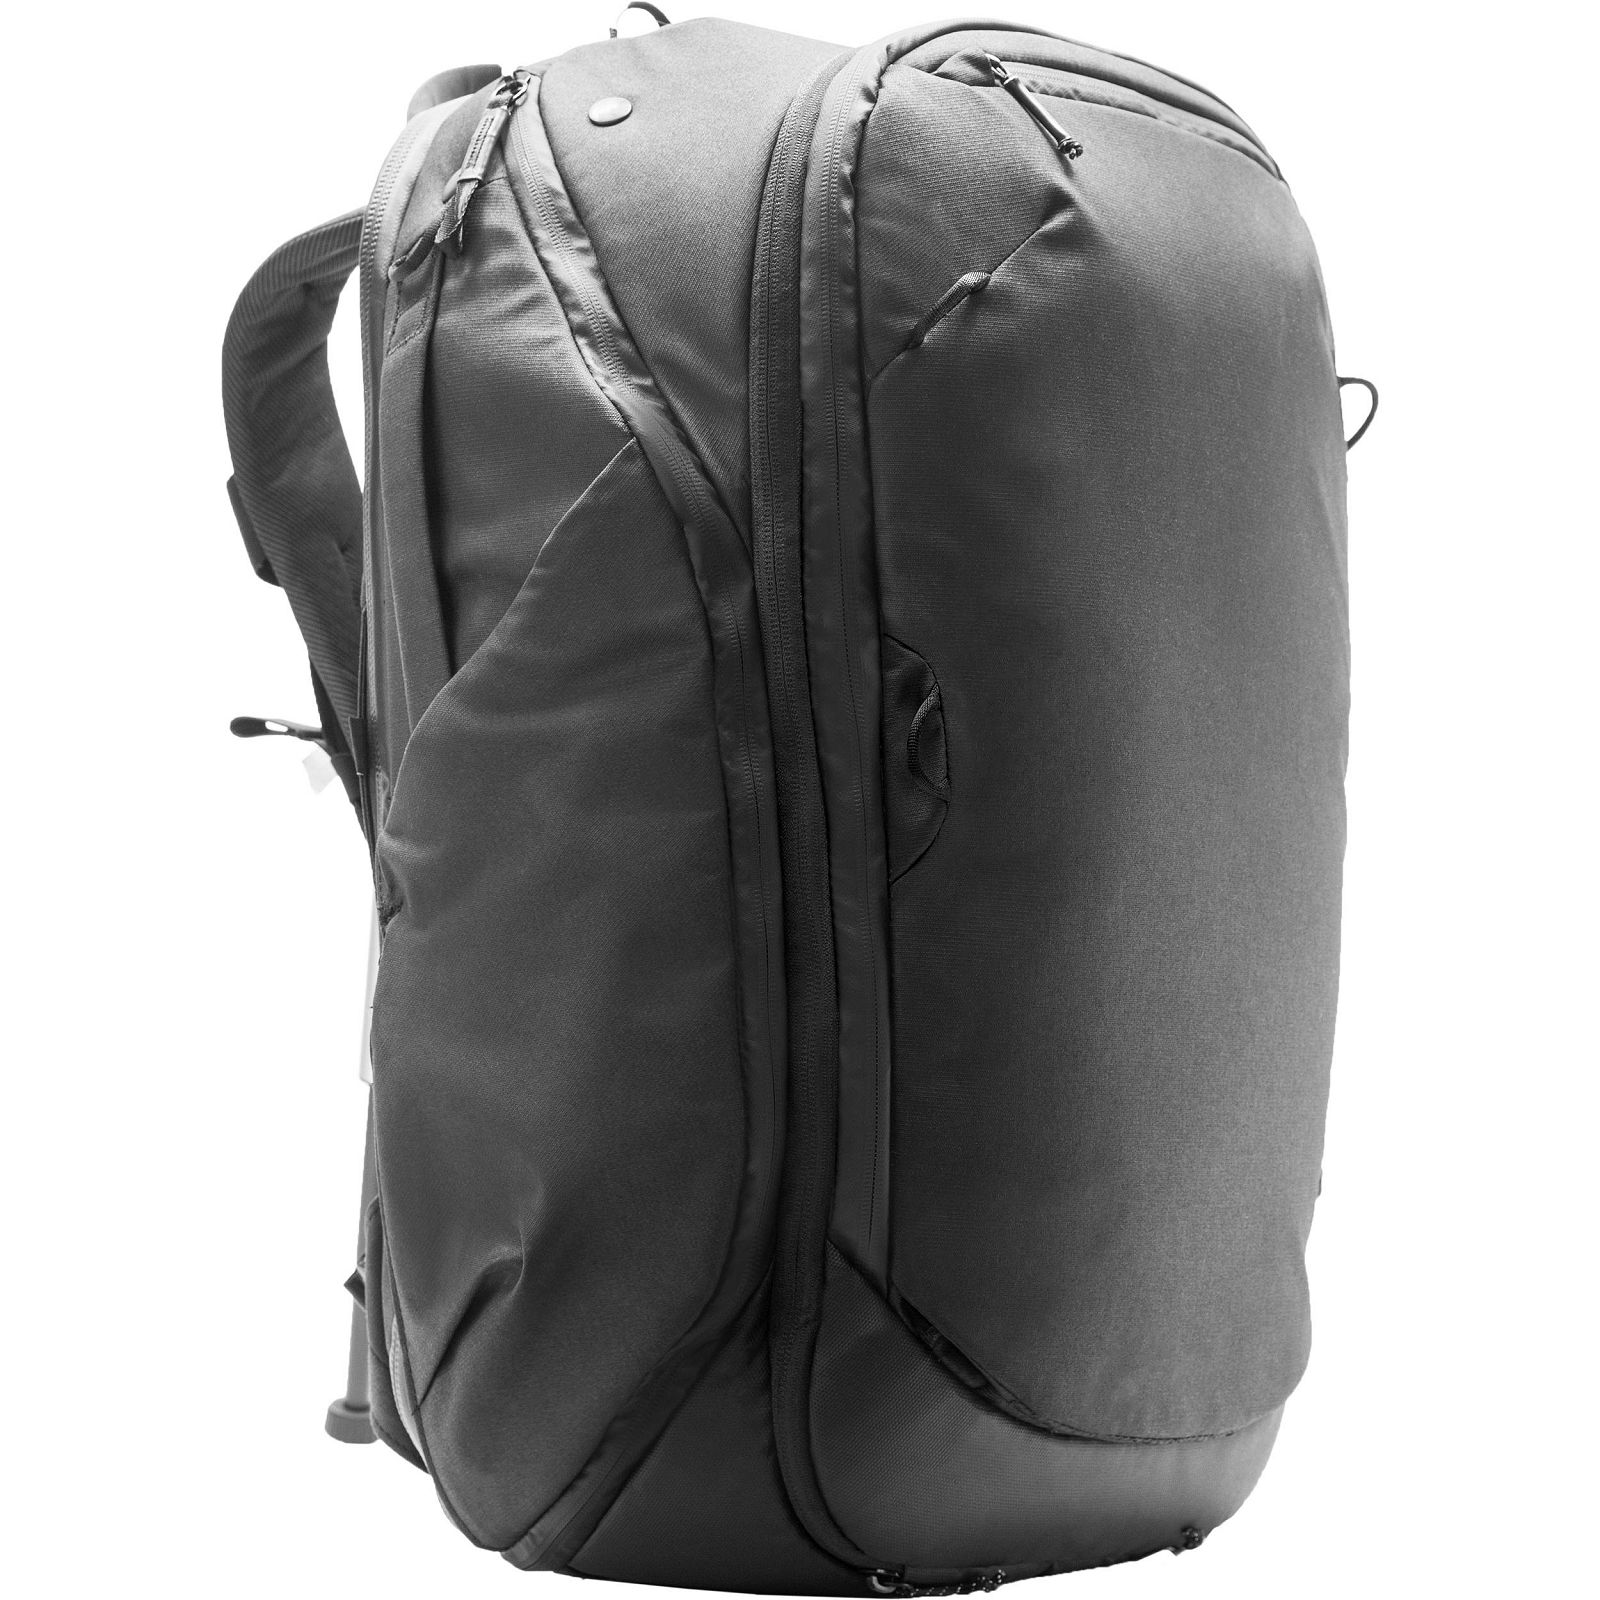 d5d185247 Peak Design Travel Backpack 45L Black ruksak za fotoaparat i foto ...